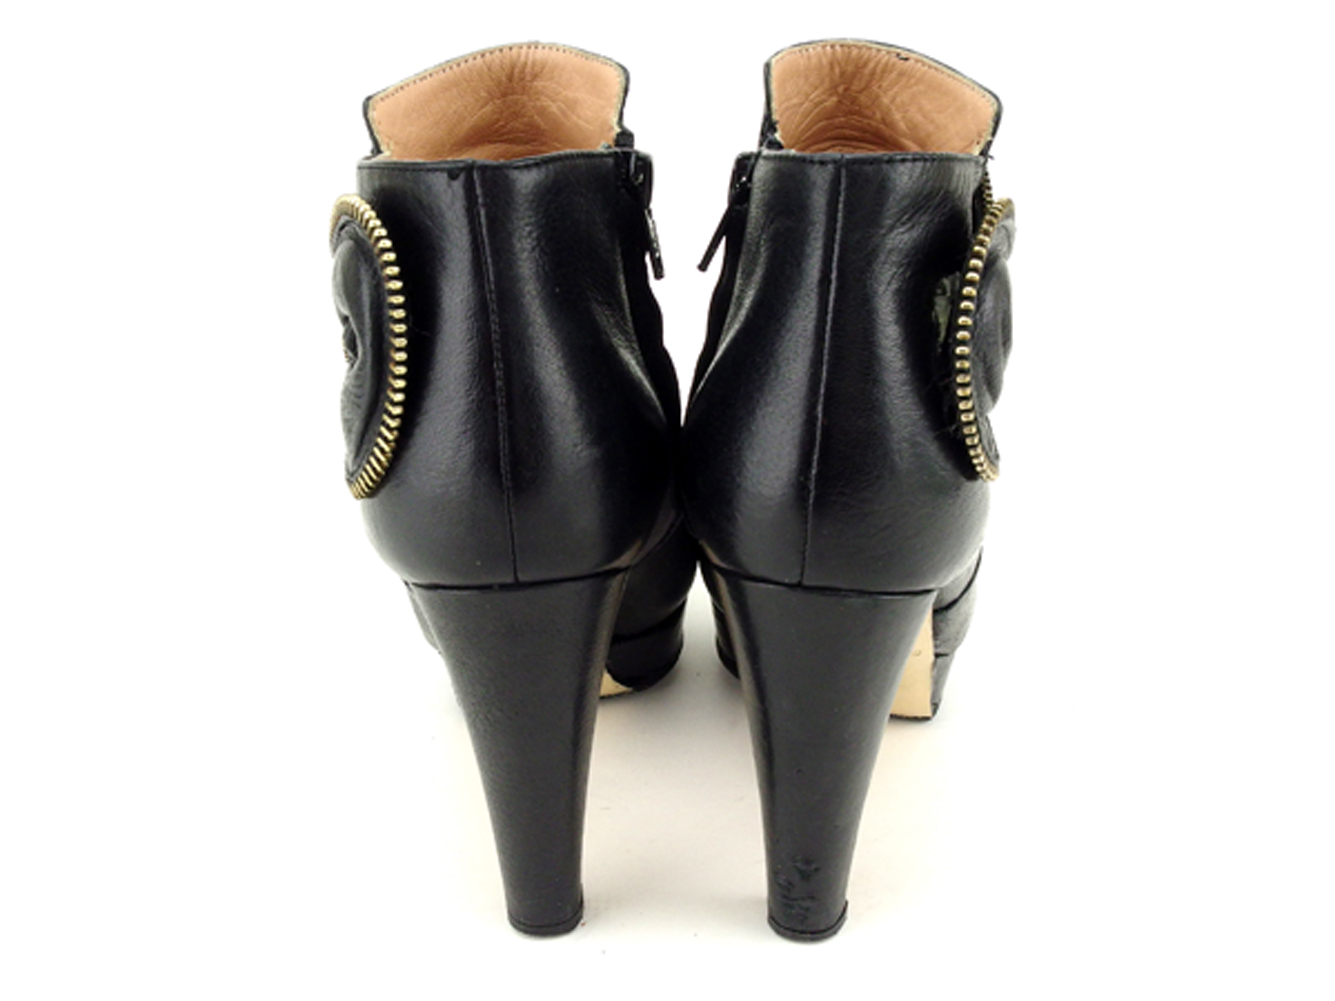 a7767cf9 Sea by Kuroe SEE BY CHLOE boots shoes shoes Lady's ♯ 36 ZIP ribbon motif  short black gold leather popularity sale T6841